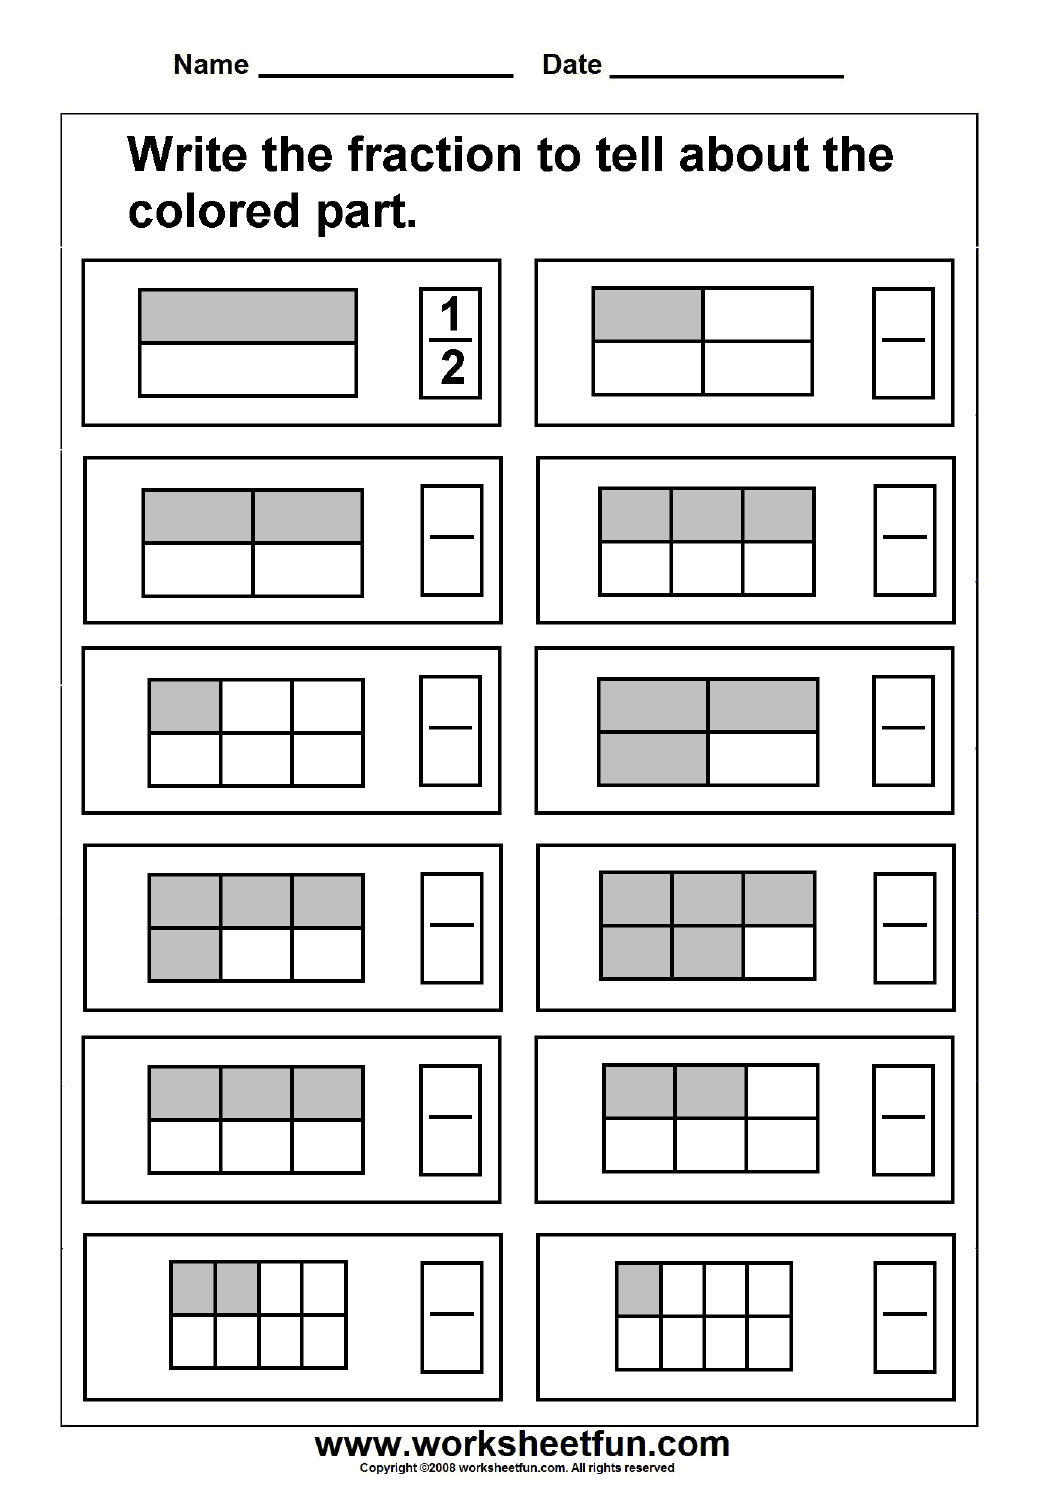 Fraction FREE Printable Worksheets Worksheetfun – Fractions Worksheets Free